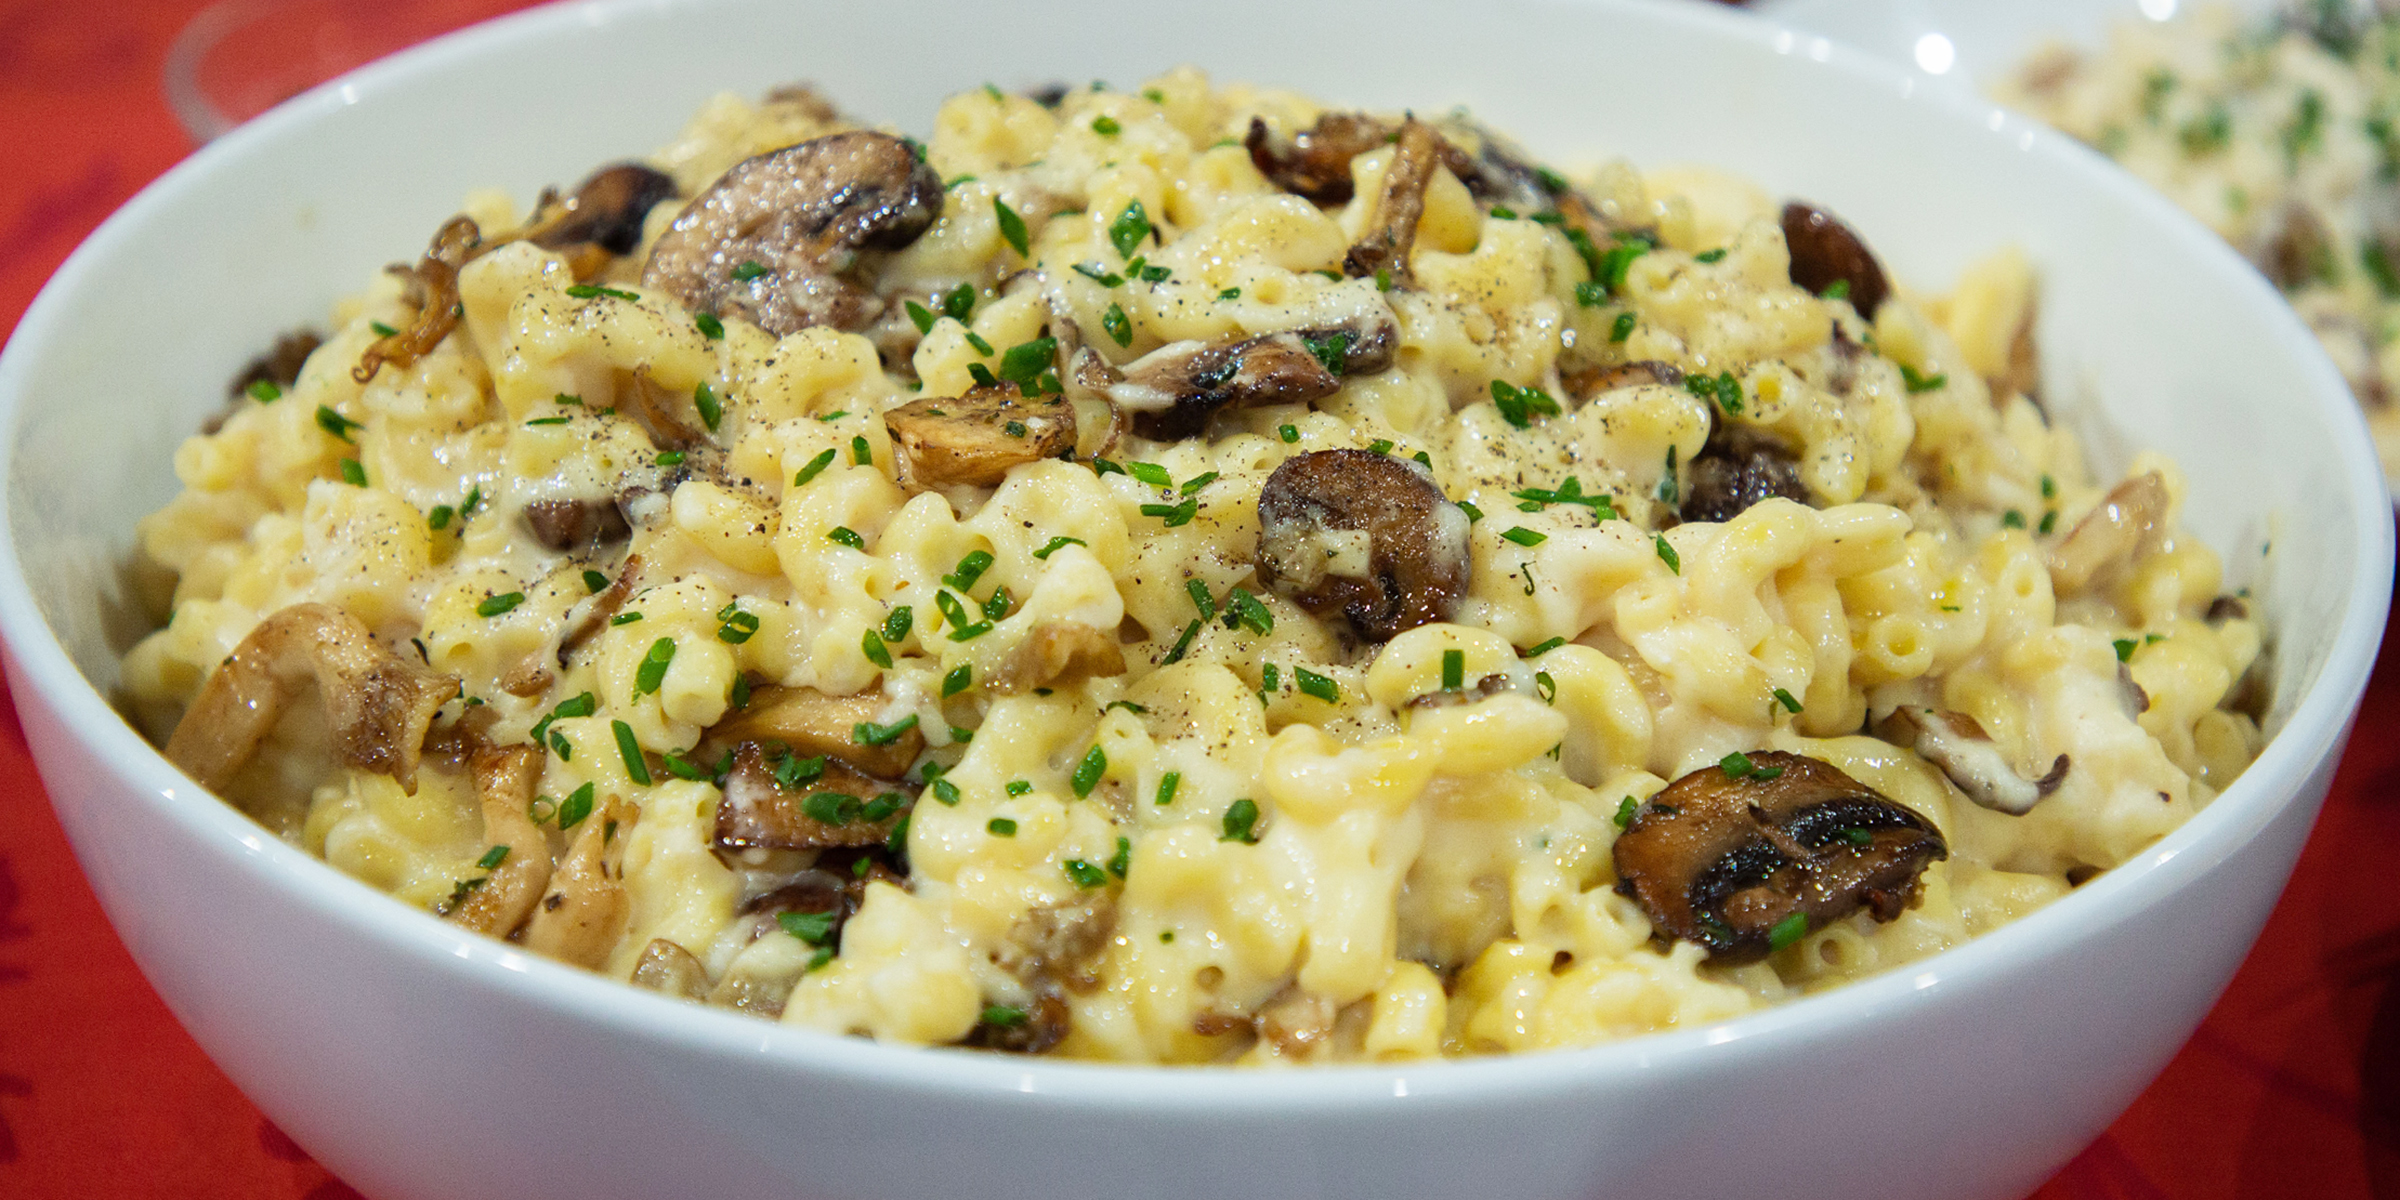 Mac And Cheese Grows Up With Creamy Gruyère And Savory Mushrooms